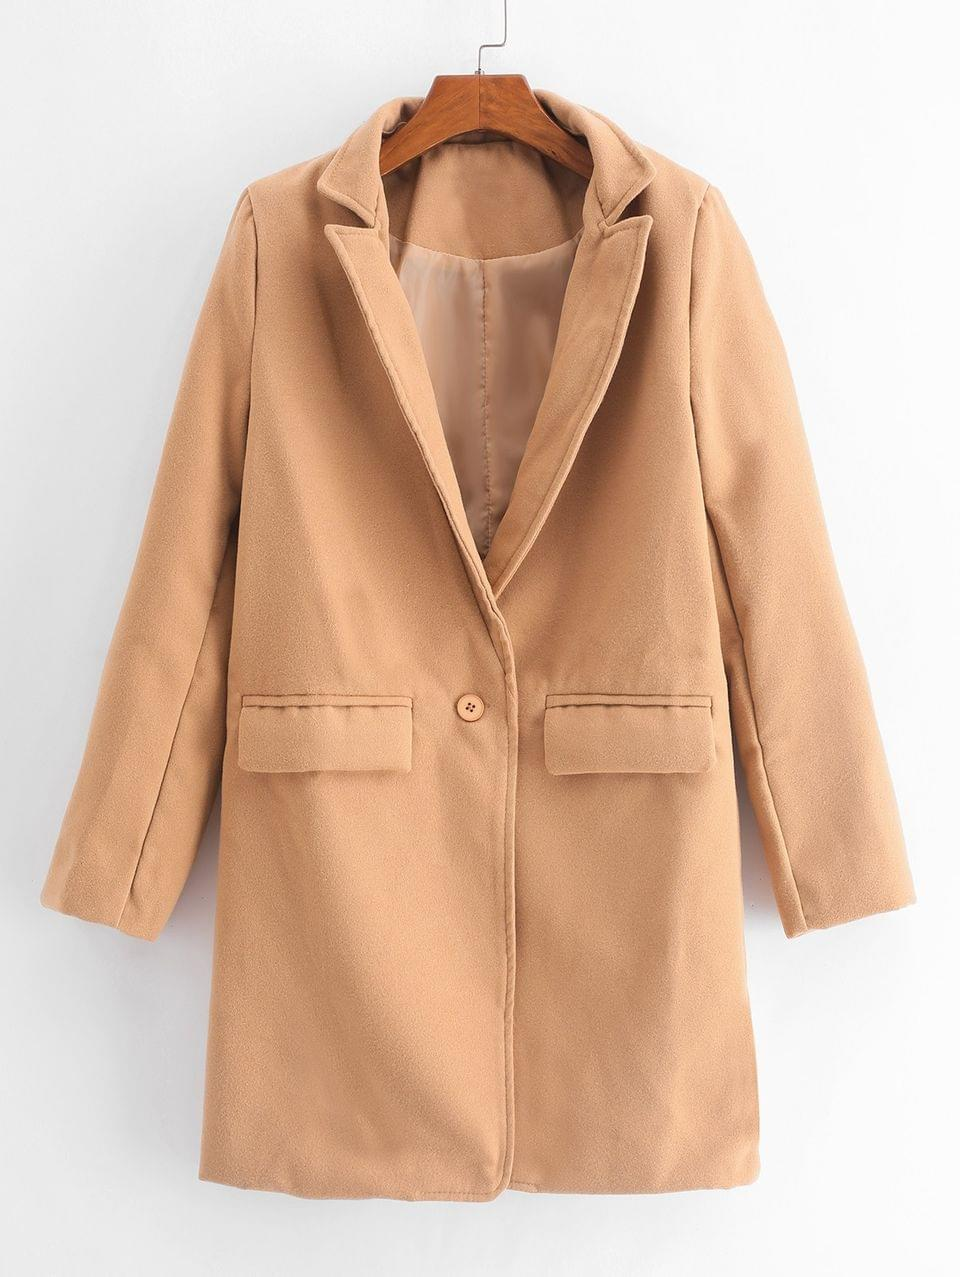 Women's One Button Flap Pockets Lapel Longline Coat - Tan M